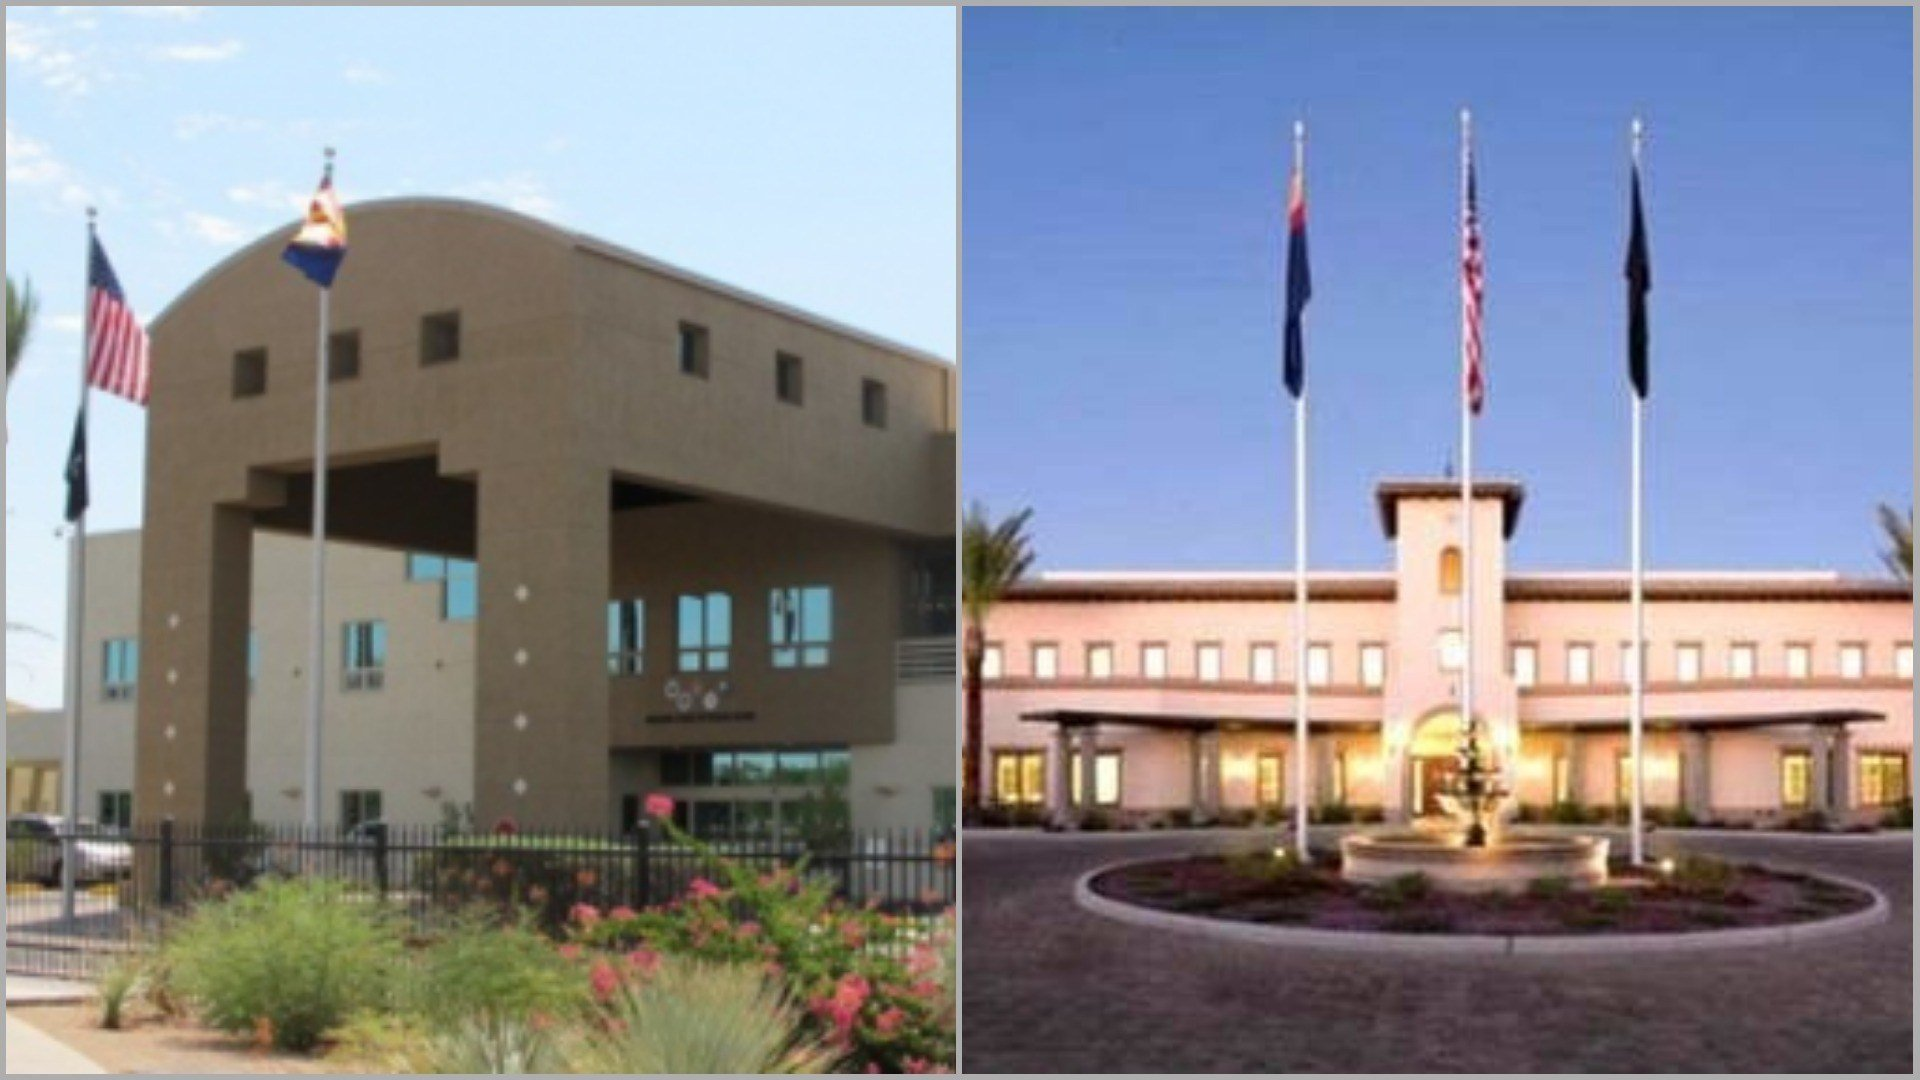 Arizona's two veterans home -- one in Phoenix an the other in Tucson -- have a combined 320-bed capacity. (Source: Arizona Department of Veterans' Services)